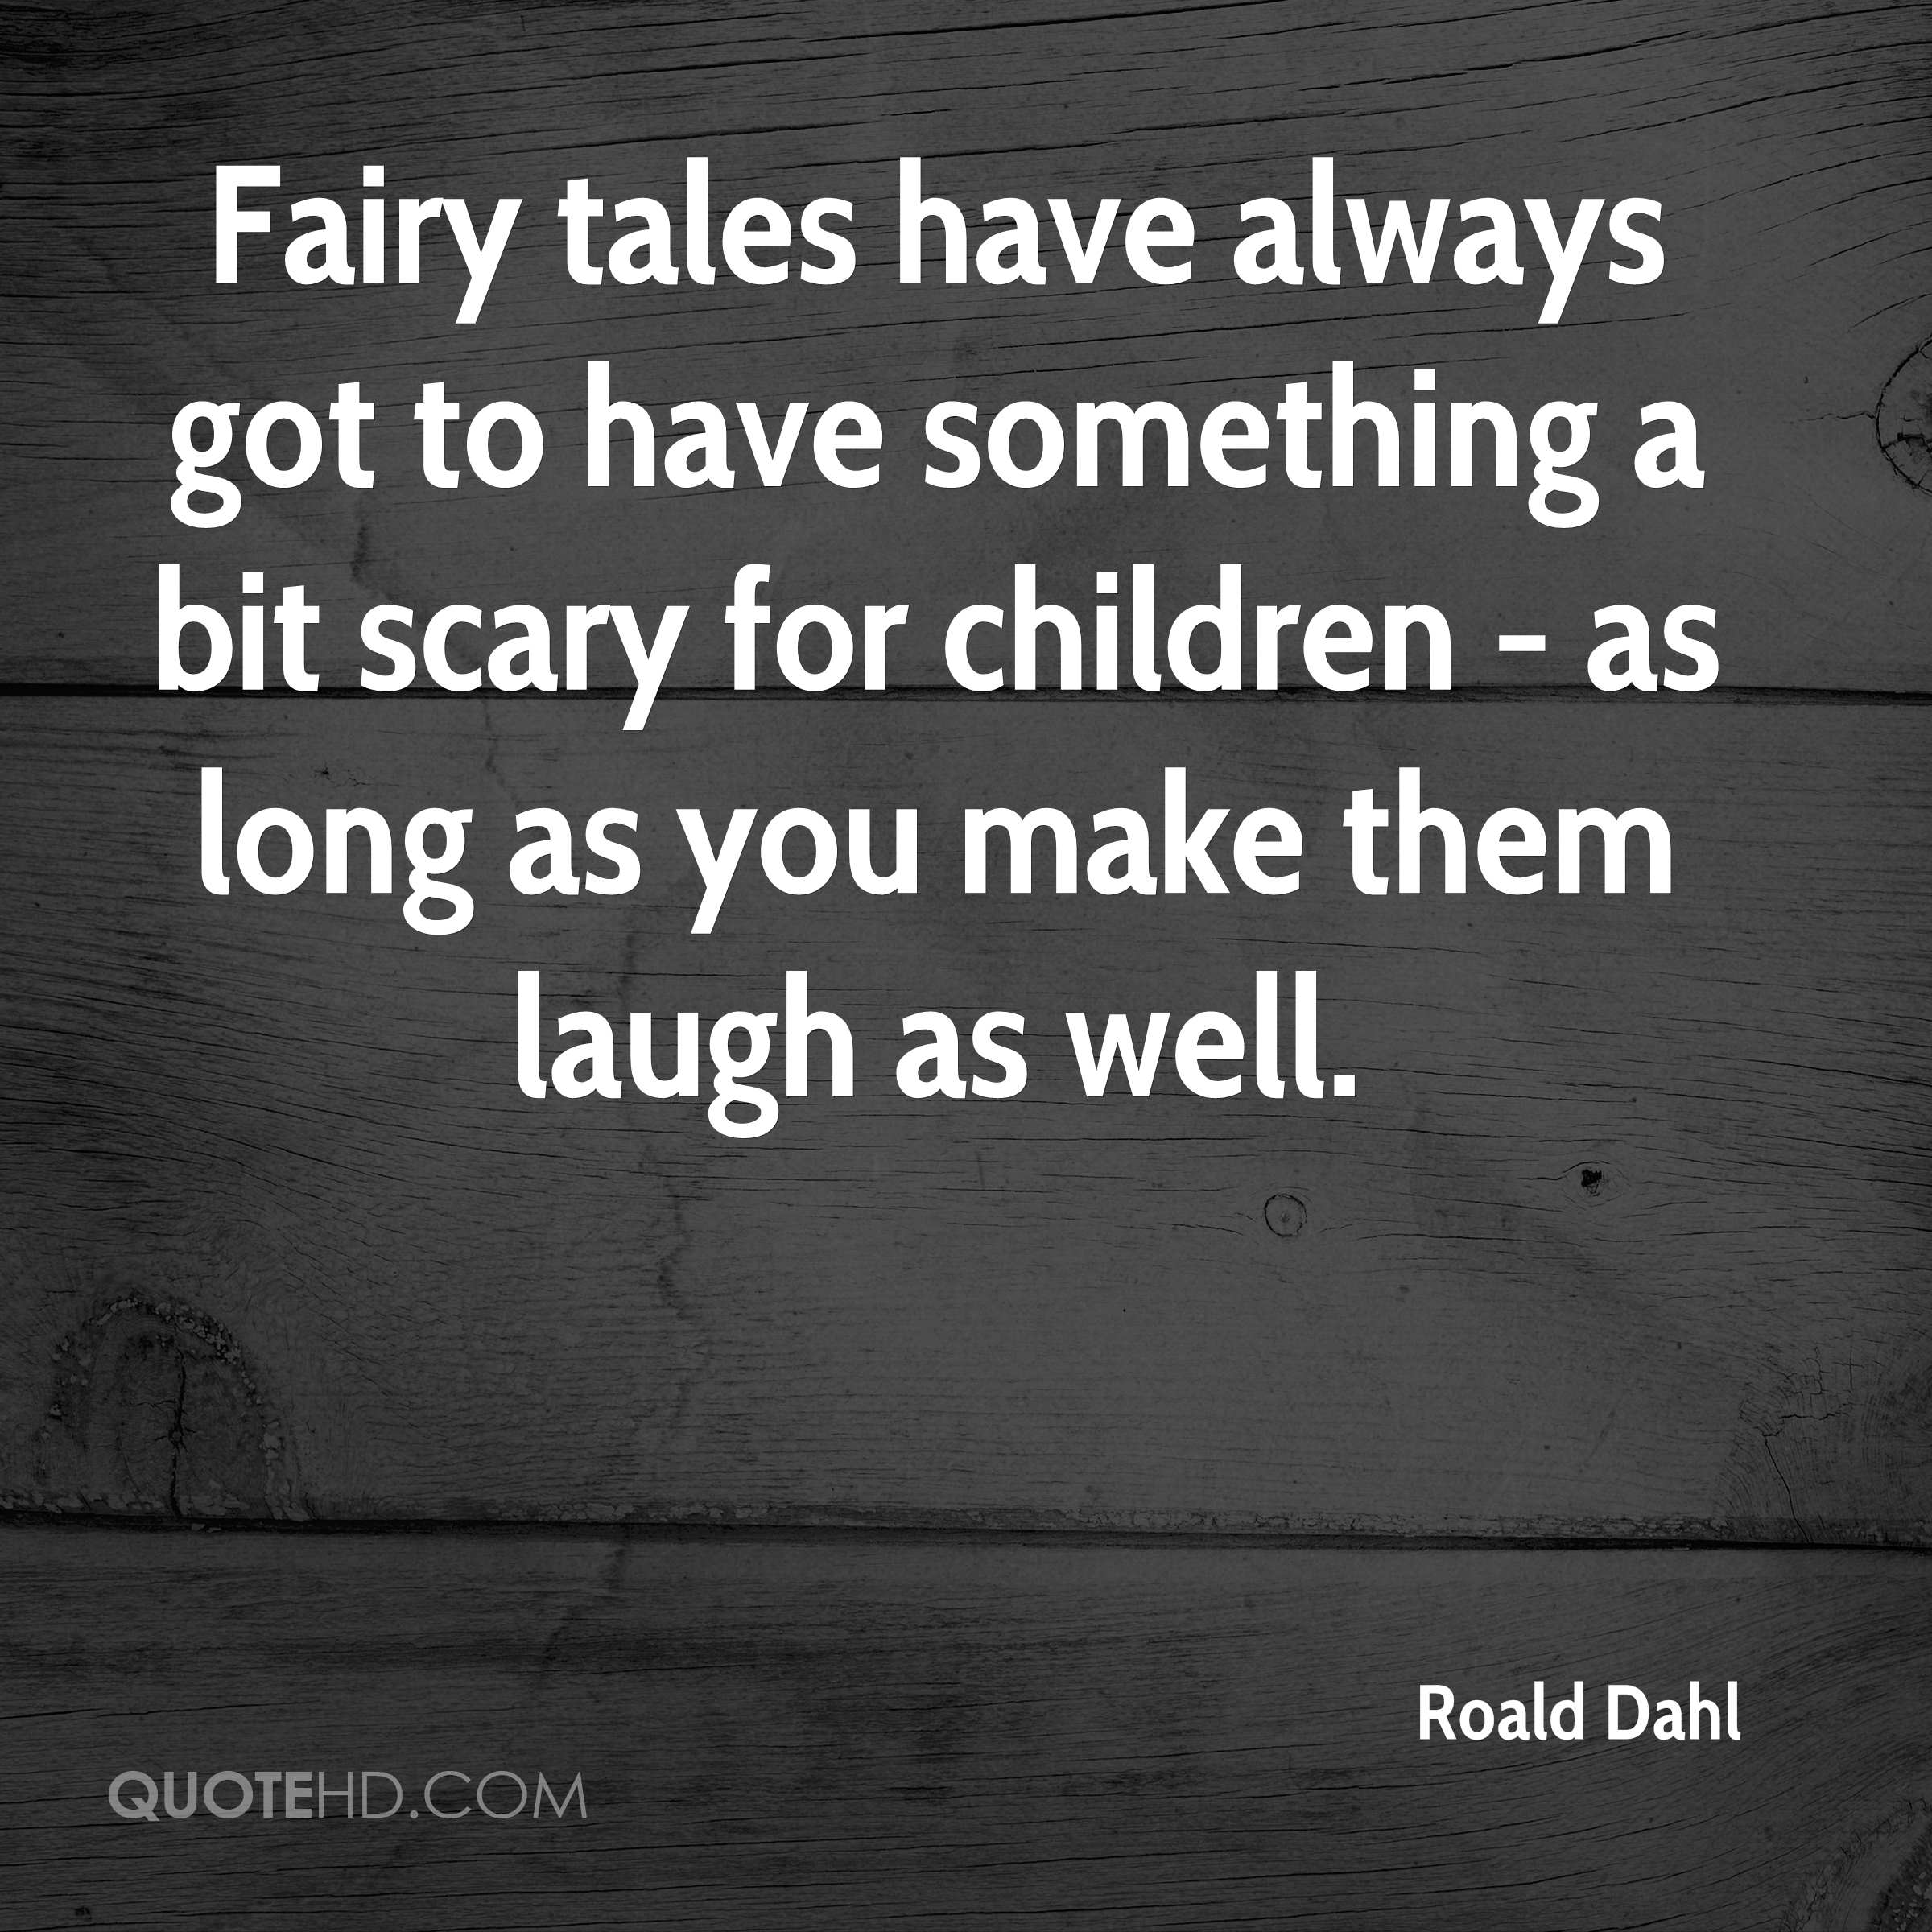 Fairy tales have always got to have something a bit scary for children - as long as you make them laugh as well.